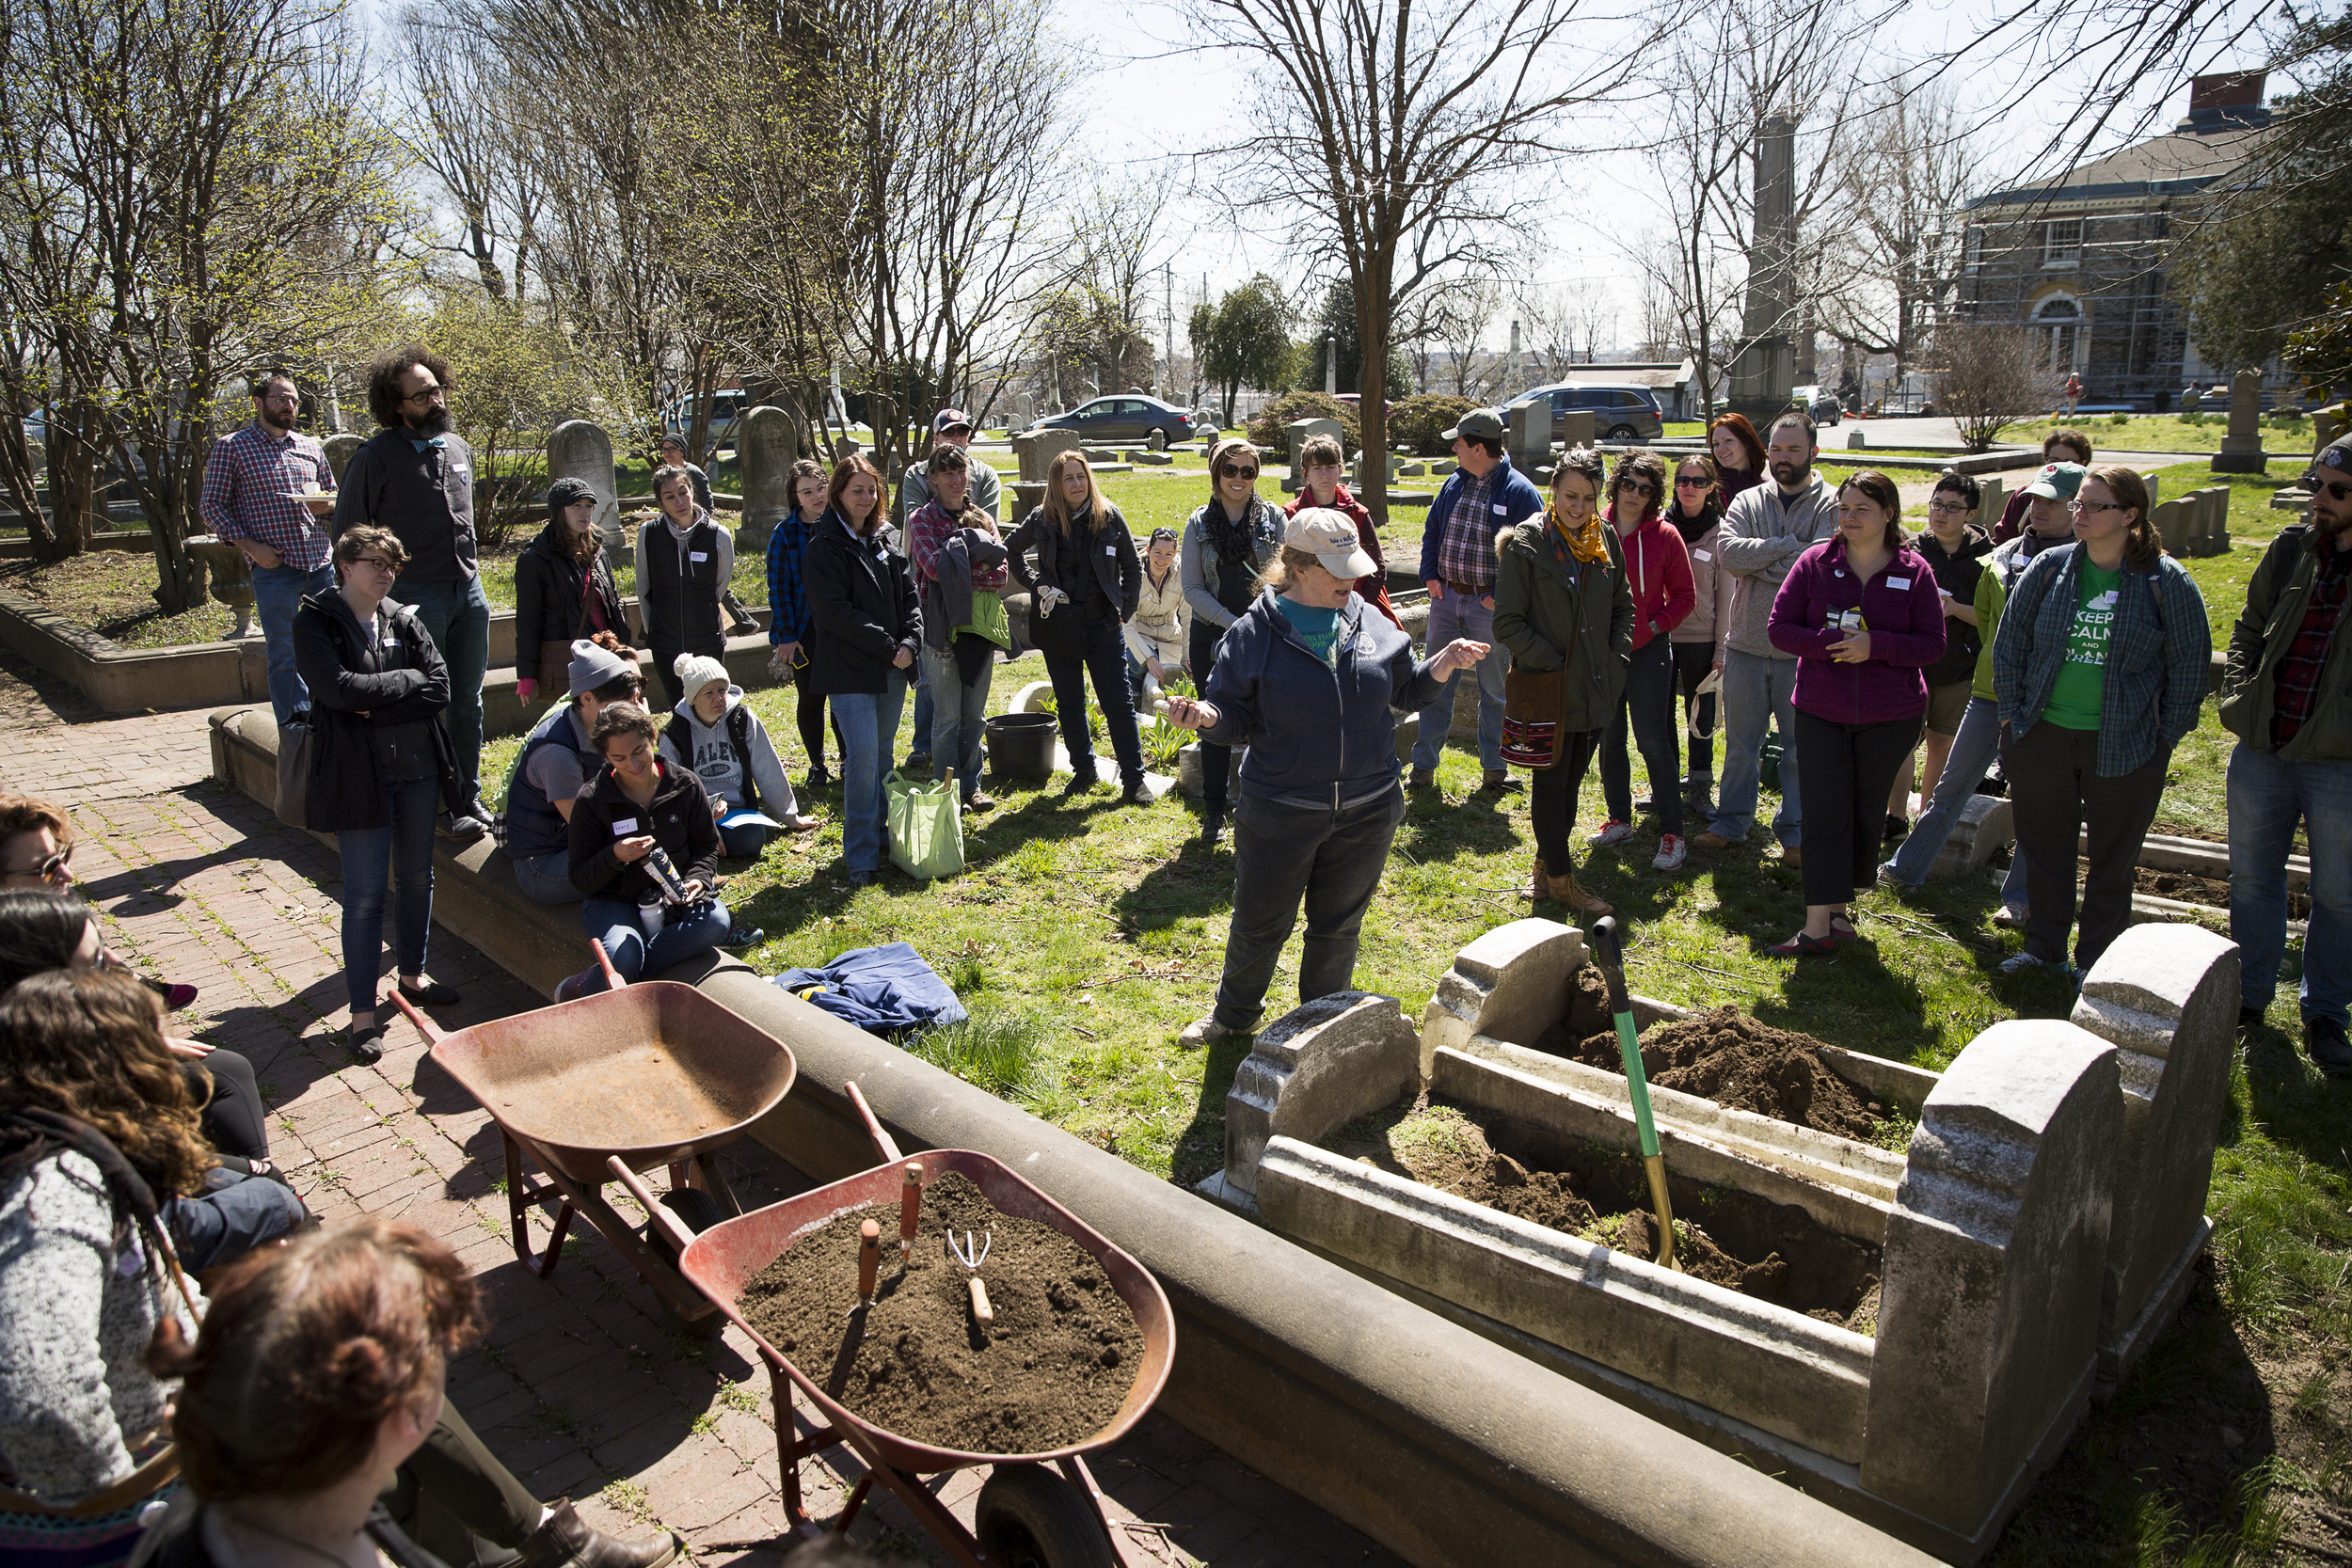 A representative from the Pennsylvania Horticultural Society gives a planting demonstration. Photo: Ryan Collerd